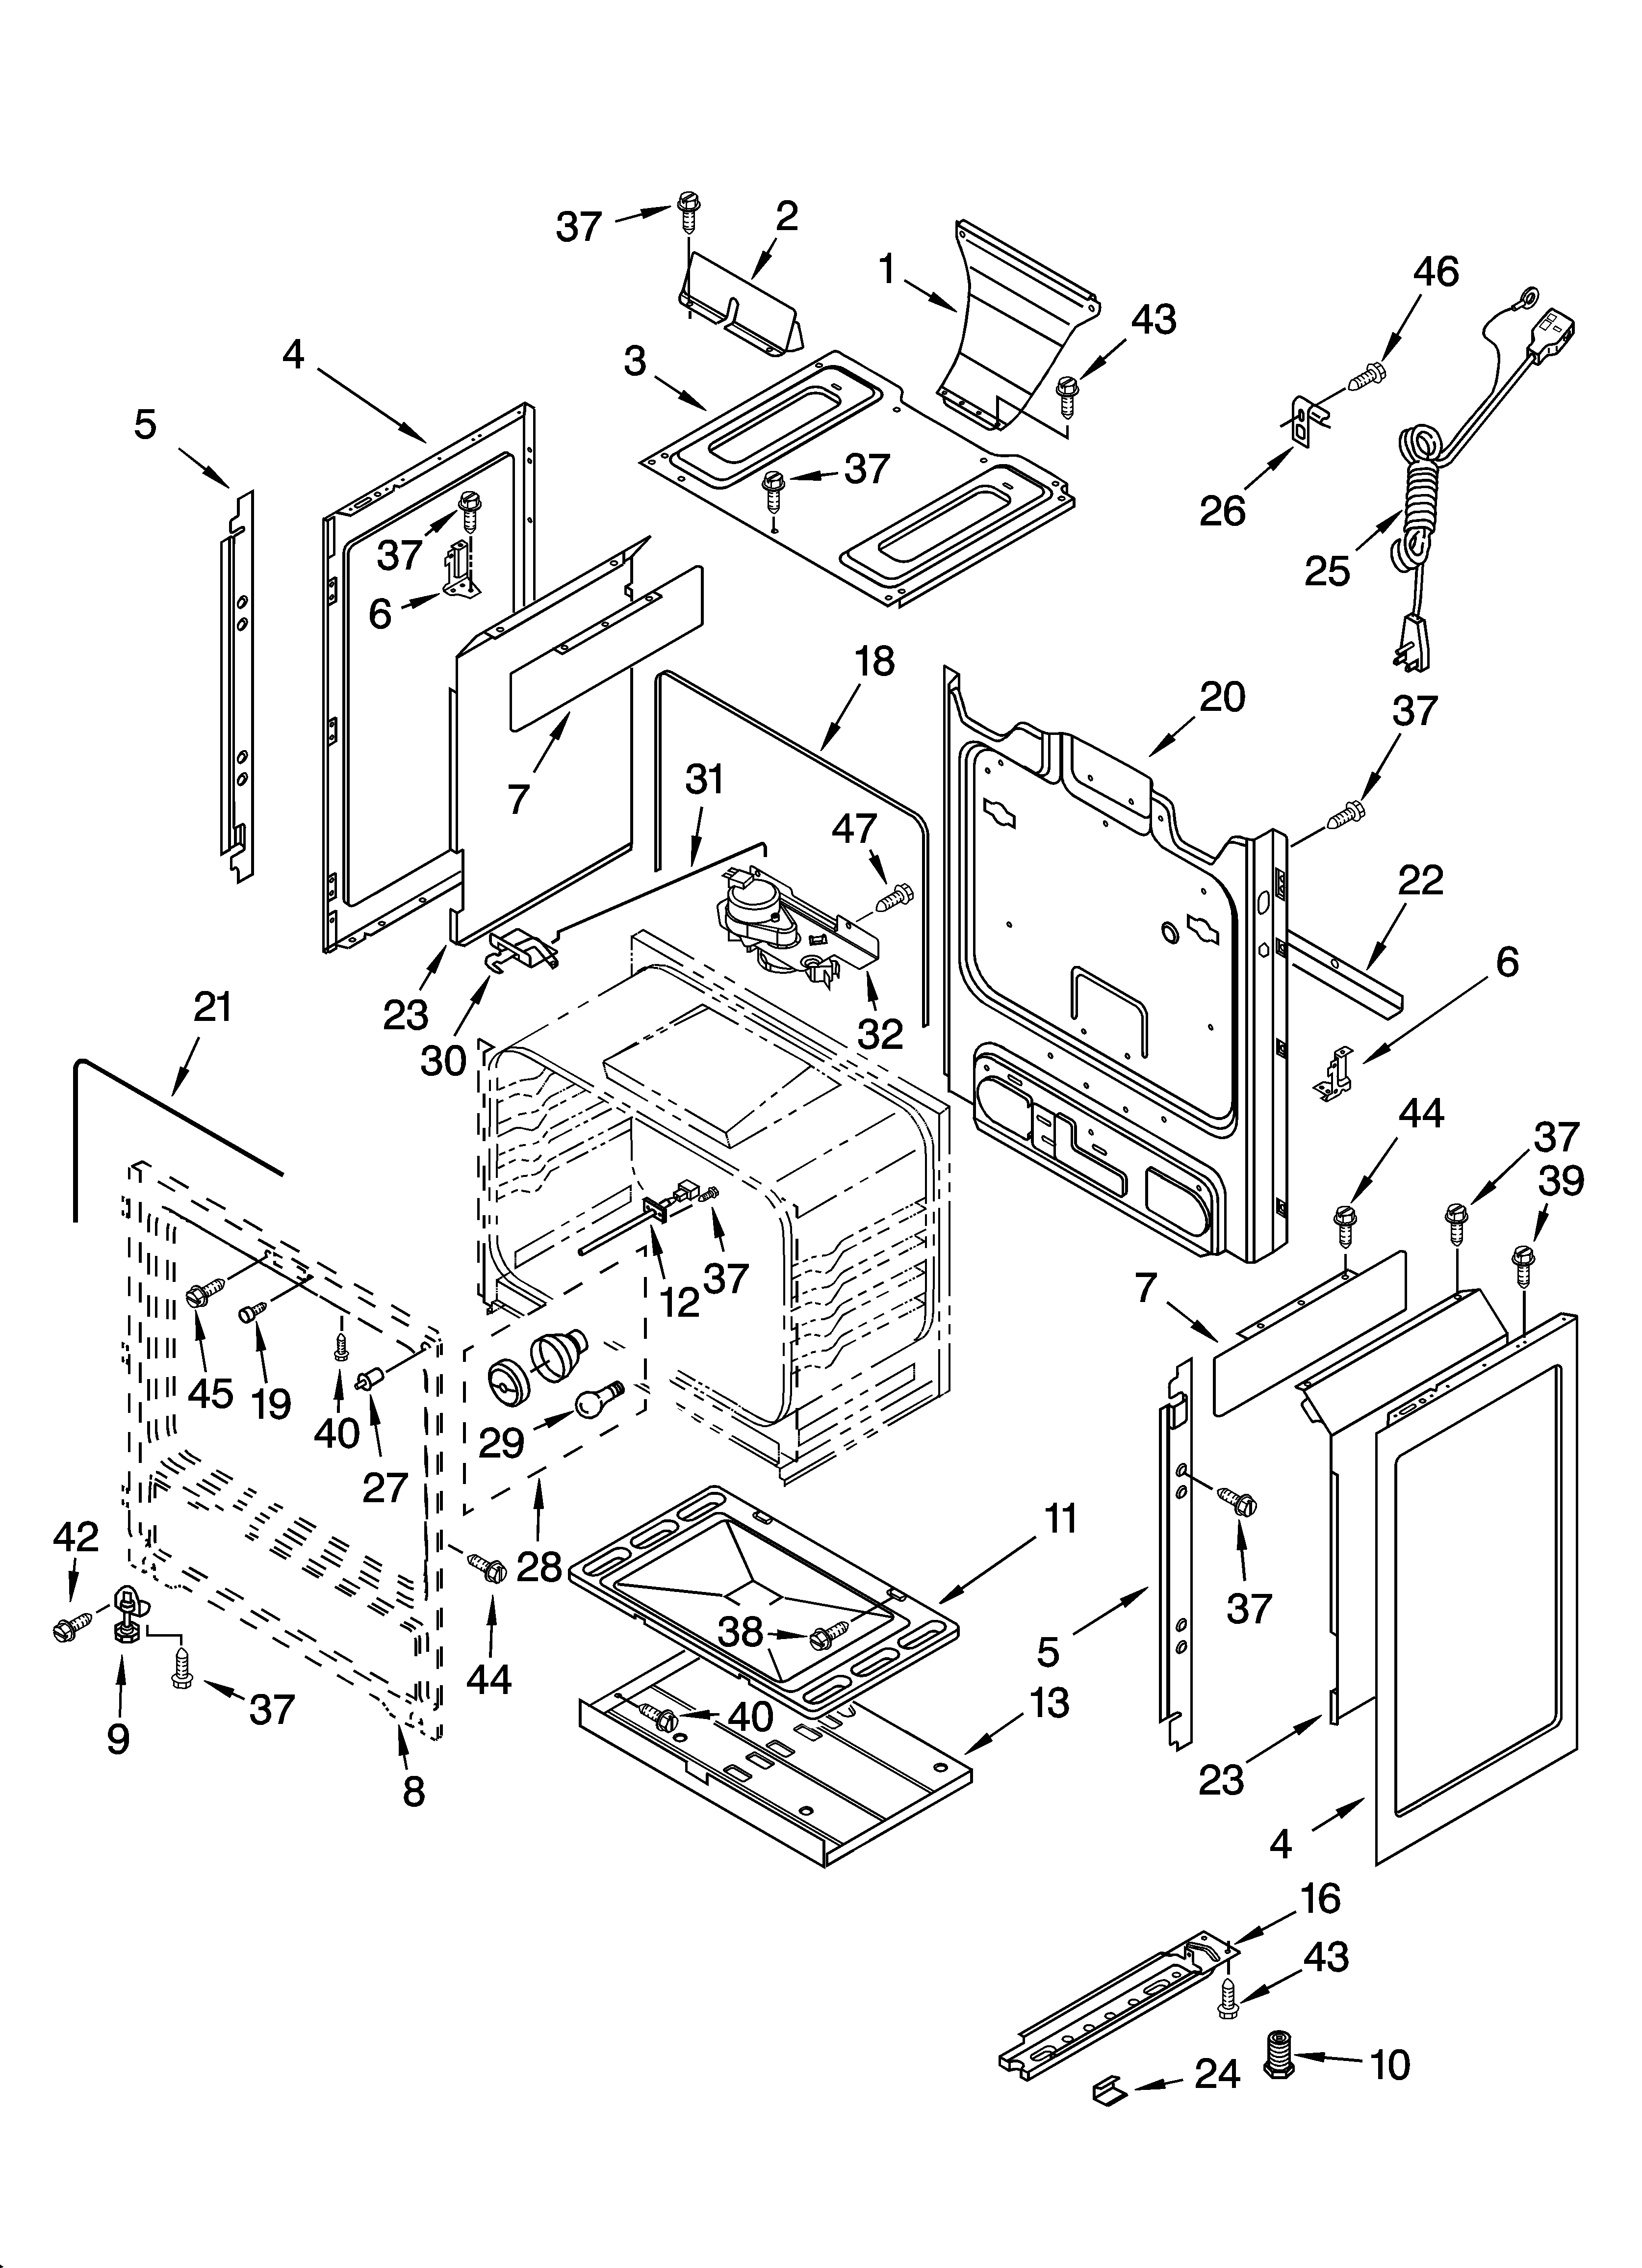 Whirlpool GS475LEMS1 chassis parts diagram